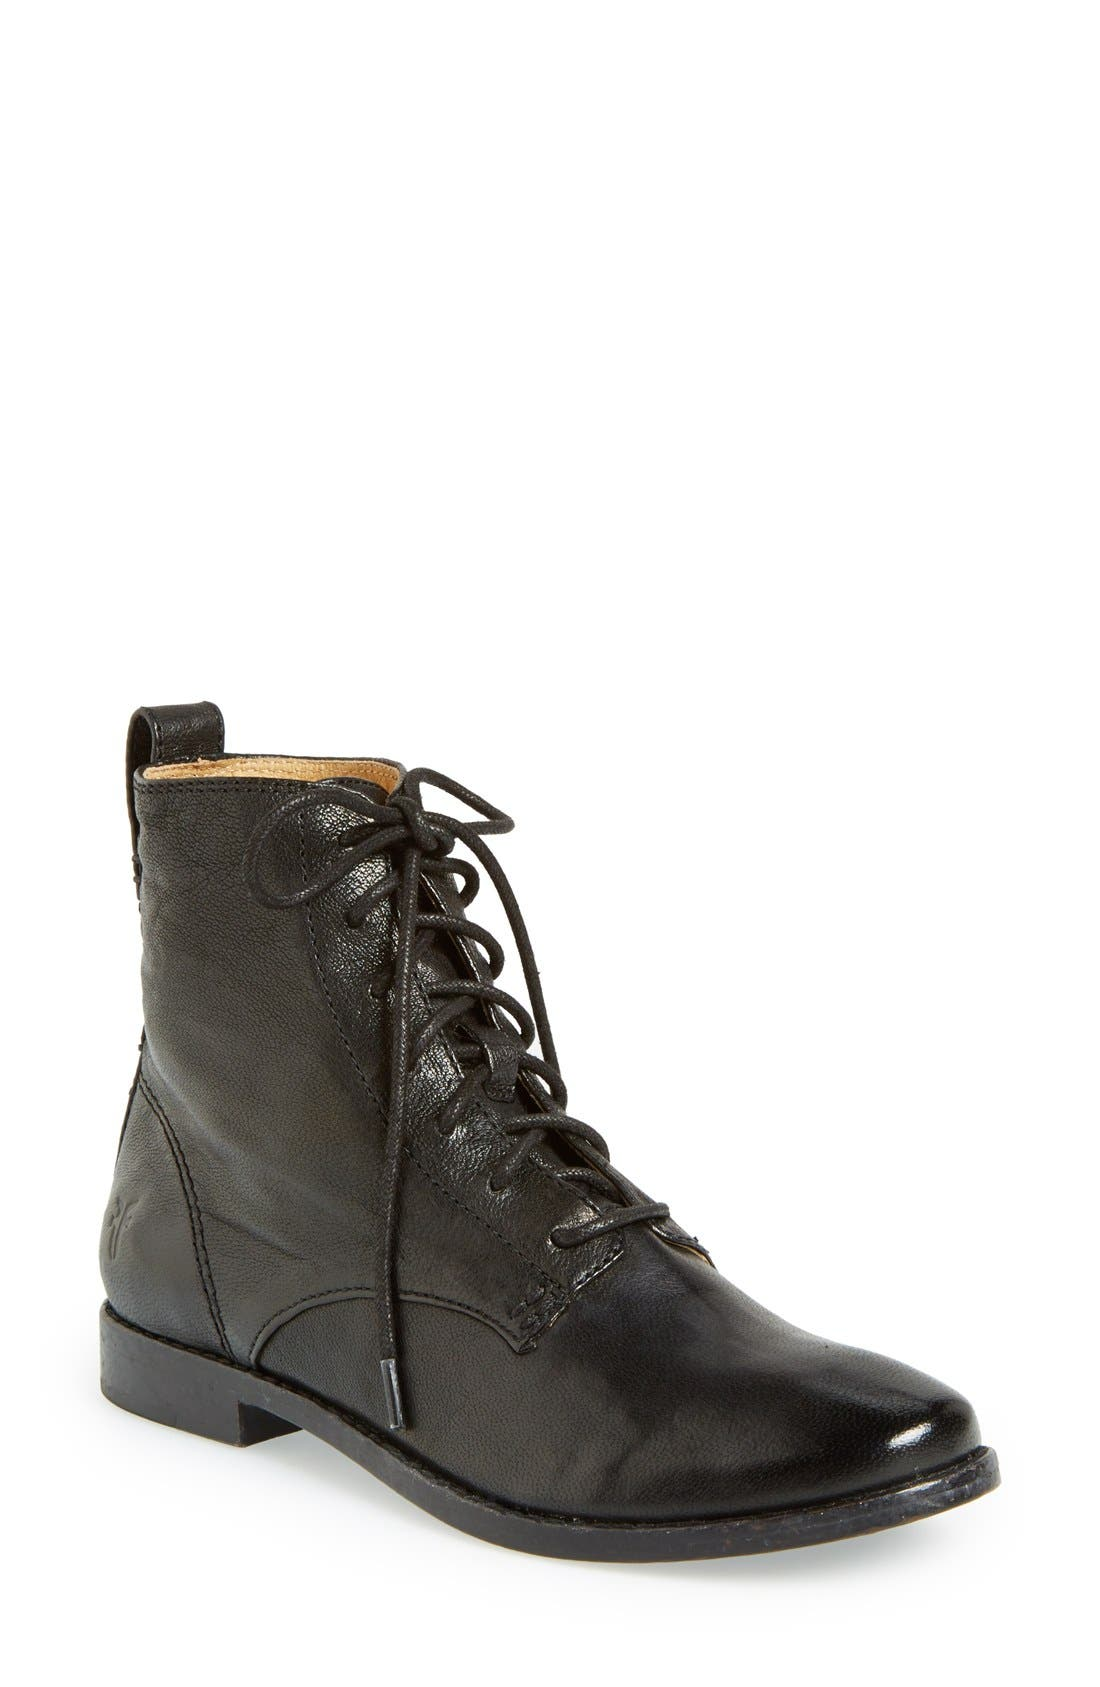 Alternate Image 1 Selected - Frye 'Anna' Lace-Up Boot (Women)